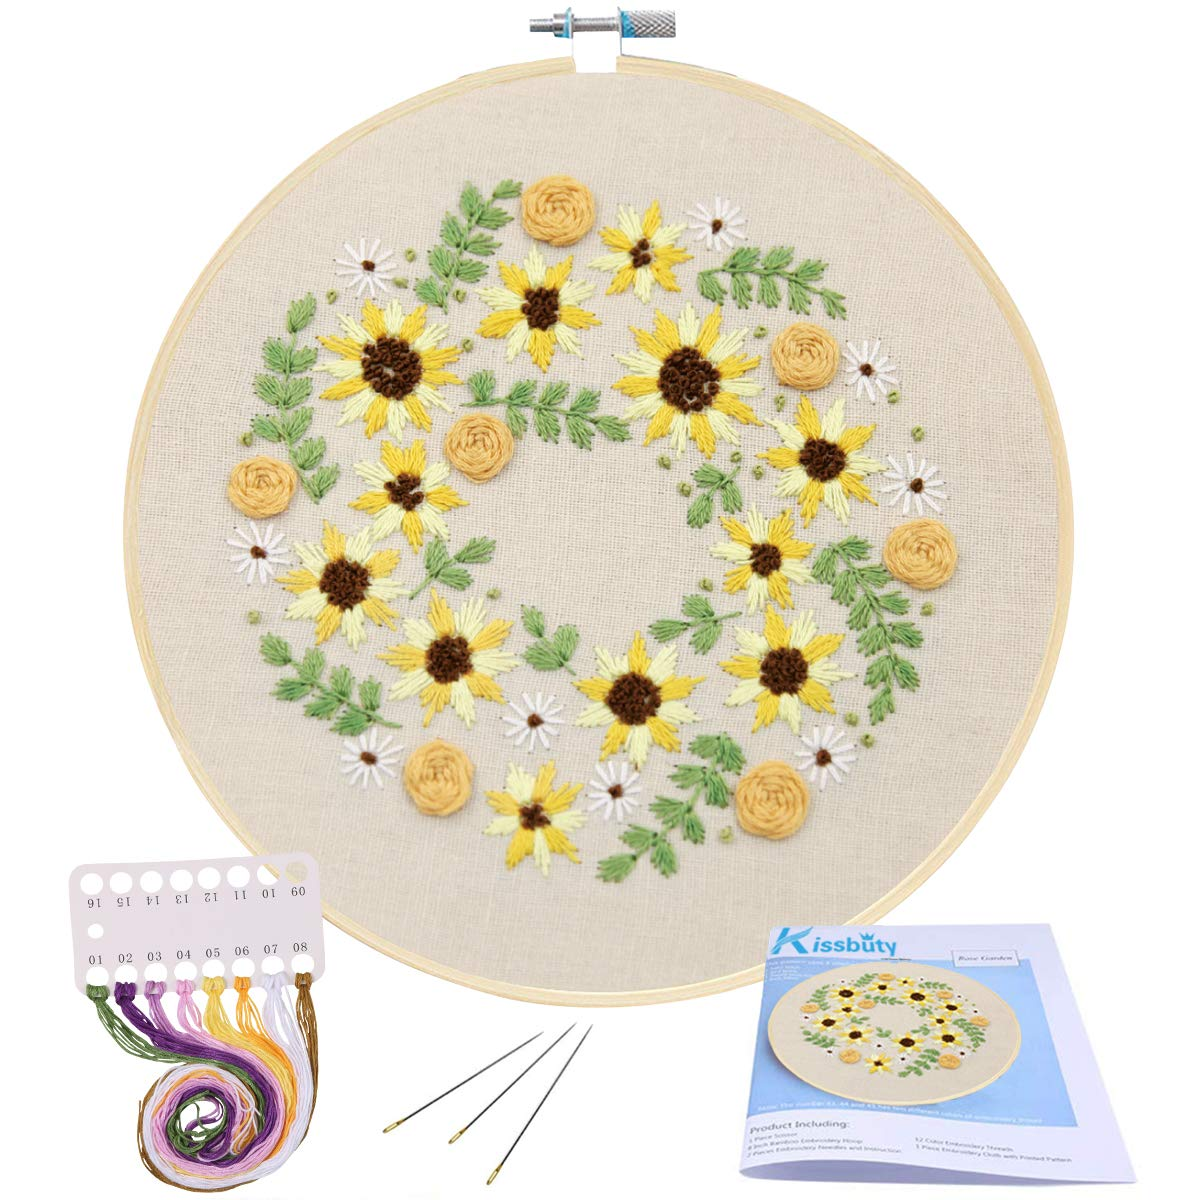 Full Range of Embroidery Starter Kit with Pattern, Kissbuty Cross Stitch Kit Including Stamped Embroidery Cloth with Floral Pattern, Bamboo Embroidery Hoop, Color Threads and Tools Kit (Sun Flowers)